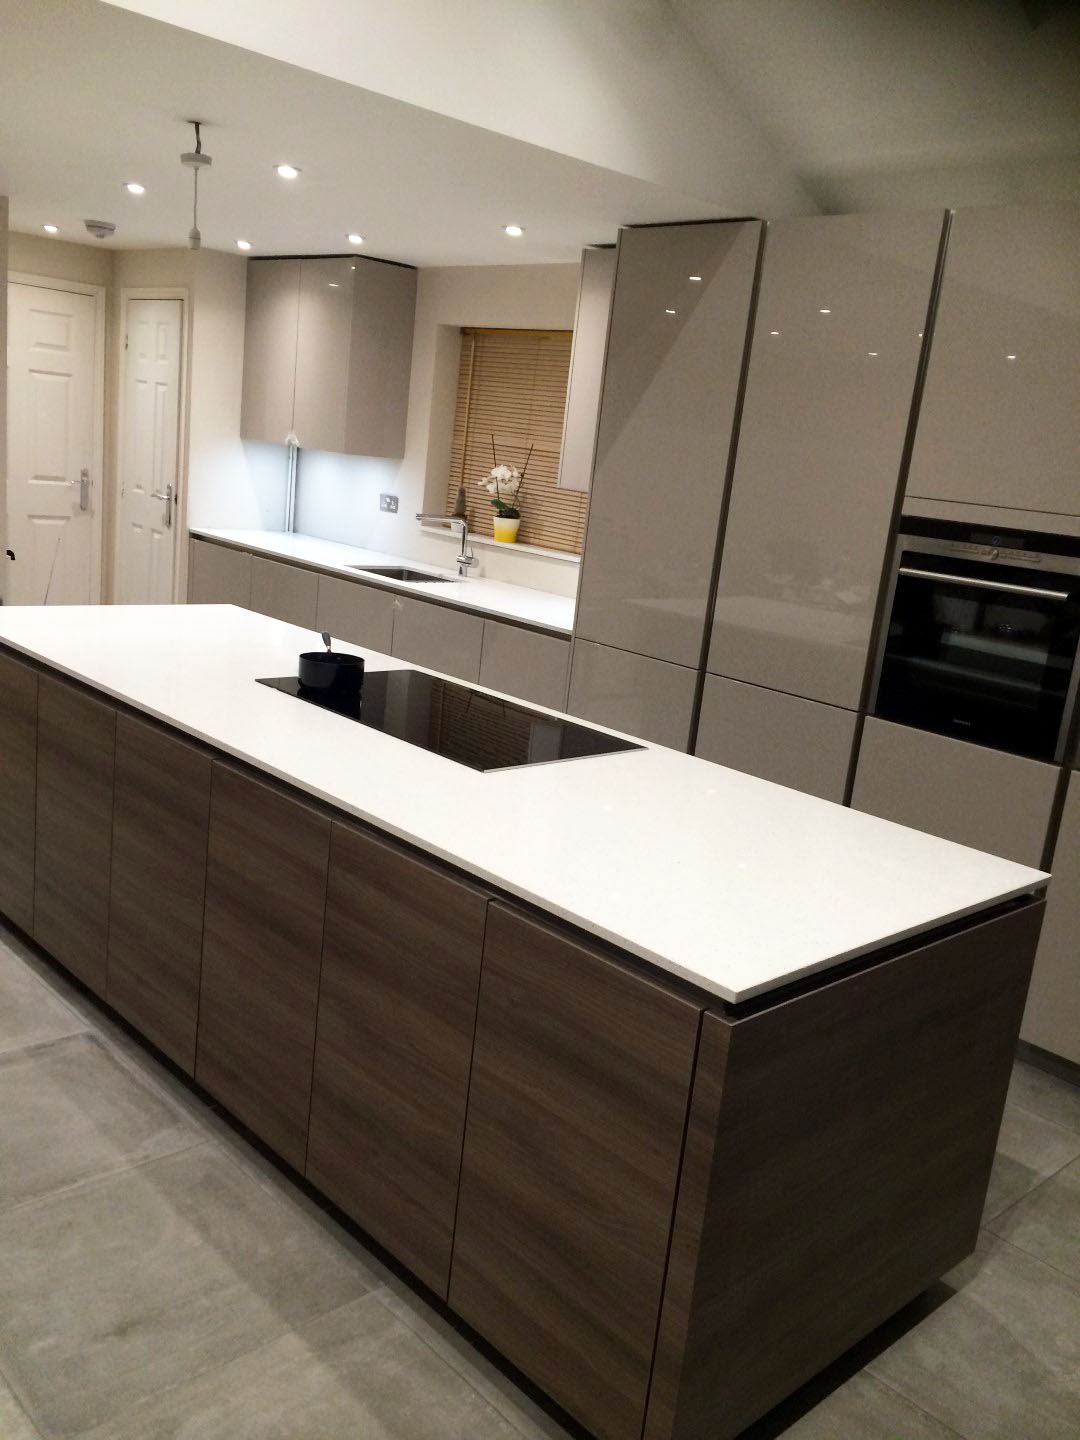 High Gloss Handleless German Kitchen Much Hadham Blax